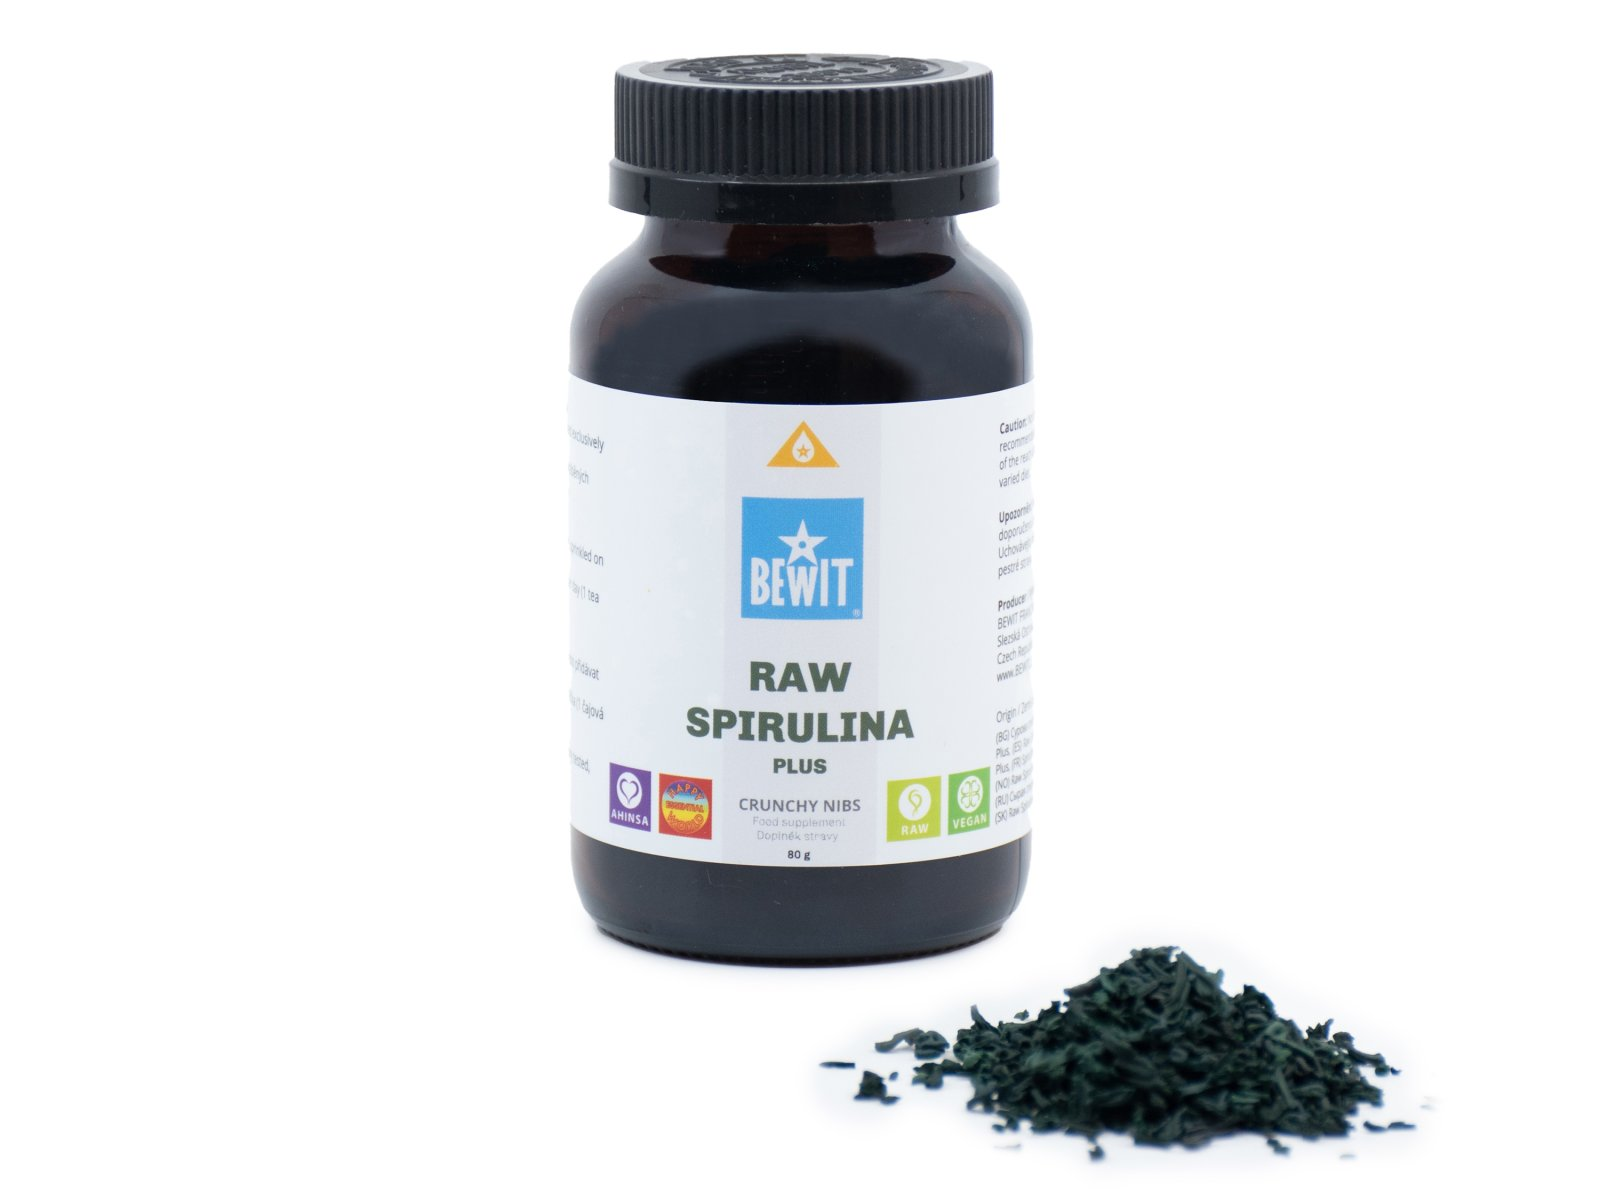 RAW SPIRULINA PLUS